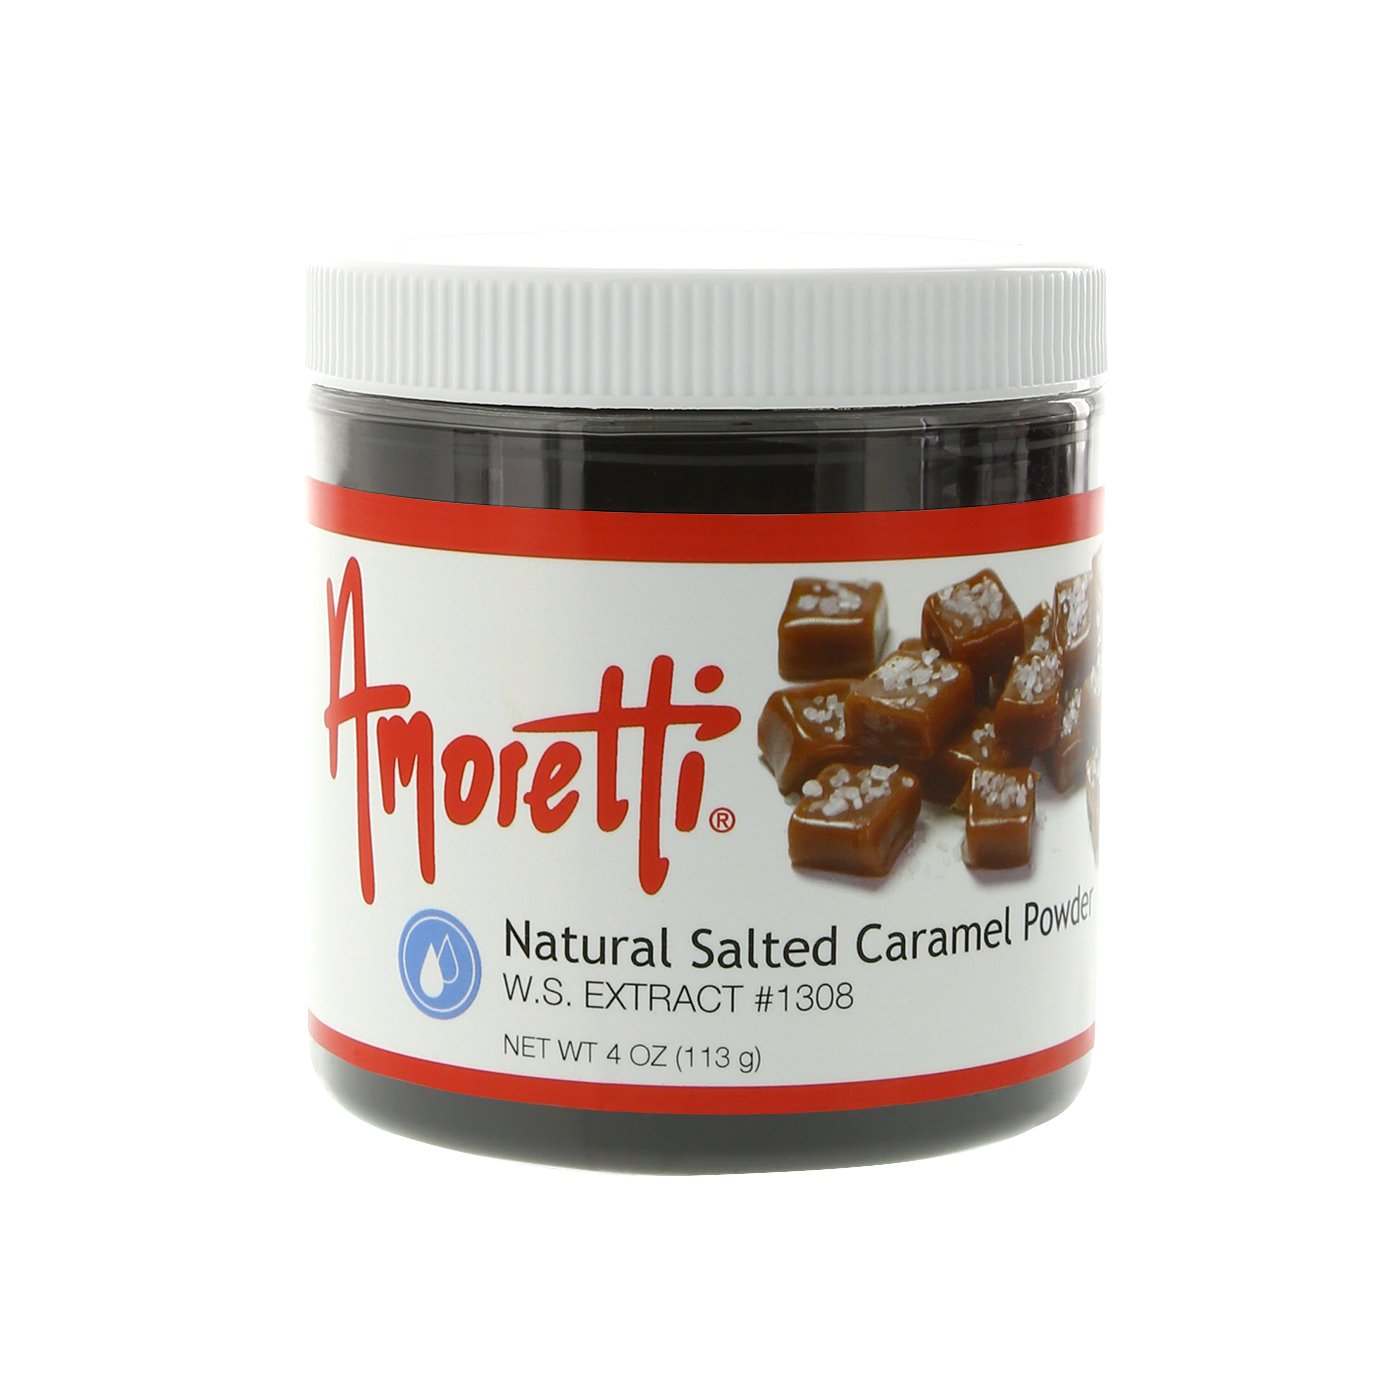 Amoretti Natural Salted Caramel Extract Powder W.S.